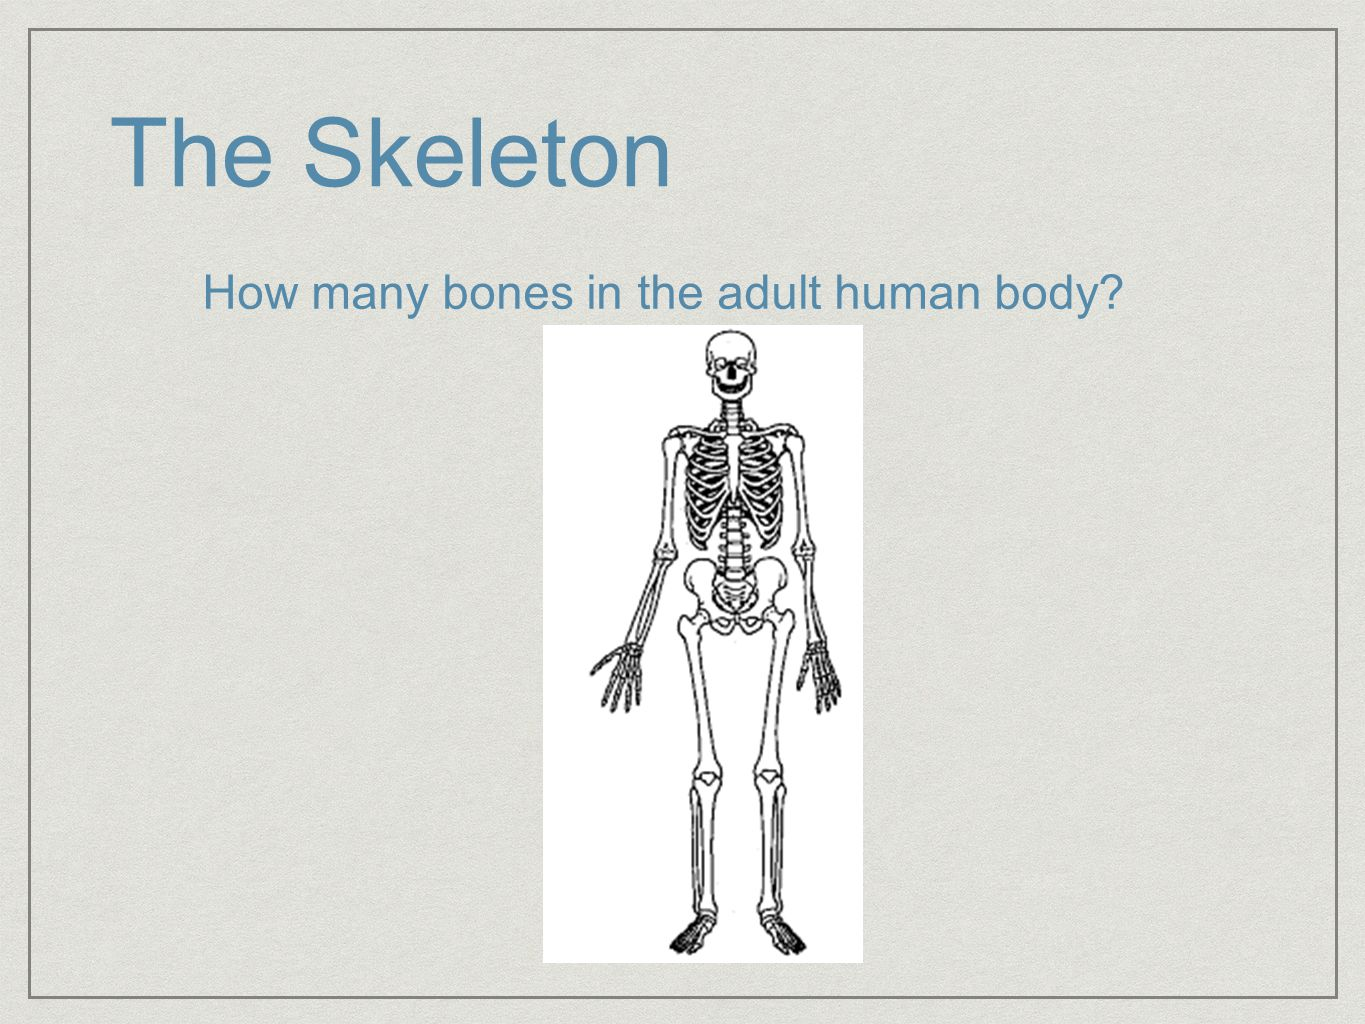 Bones are in the adult body